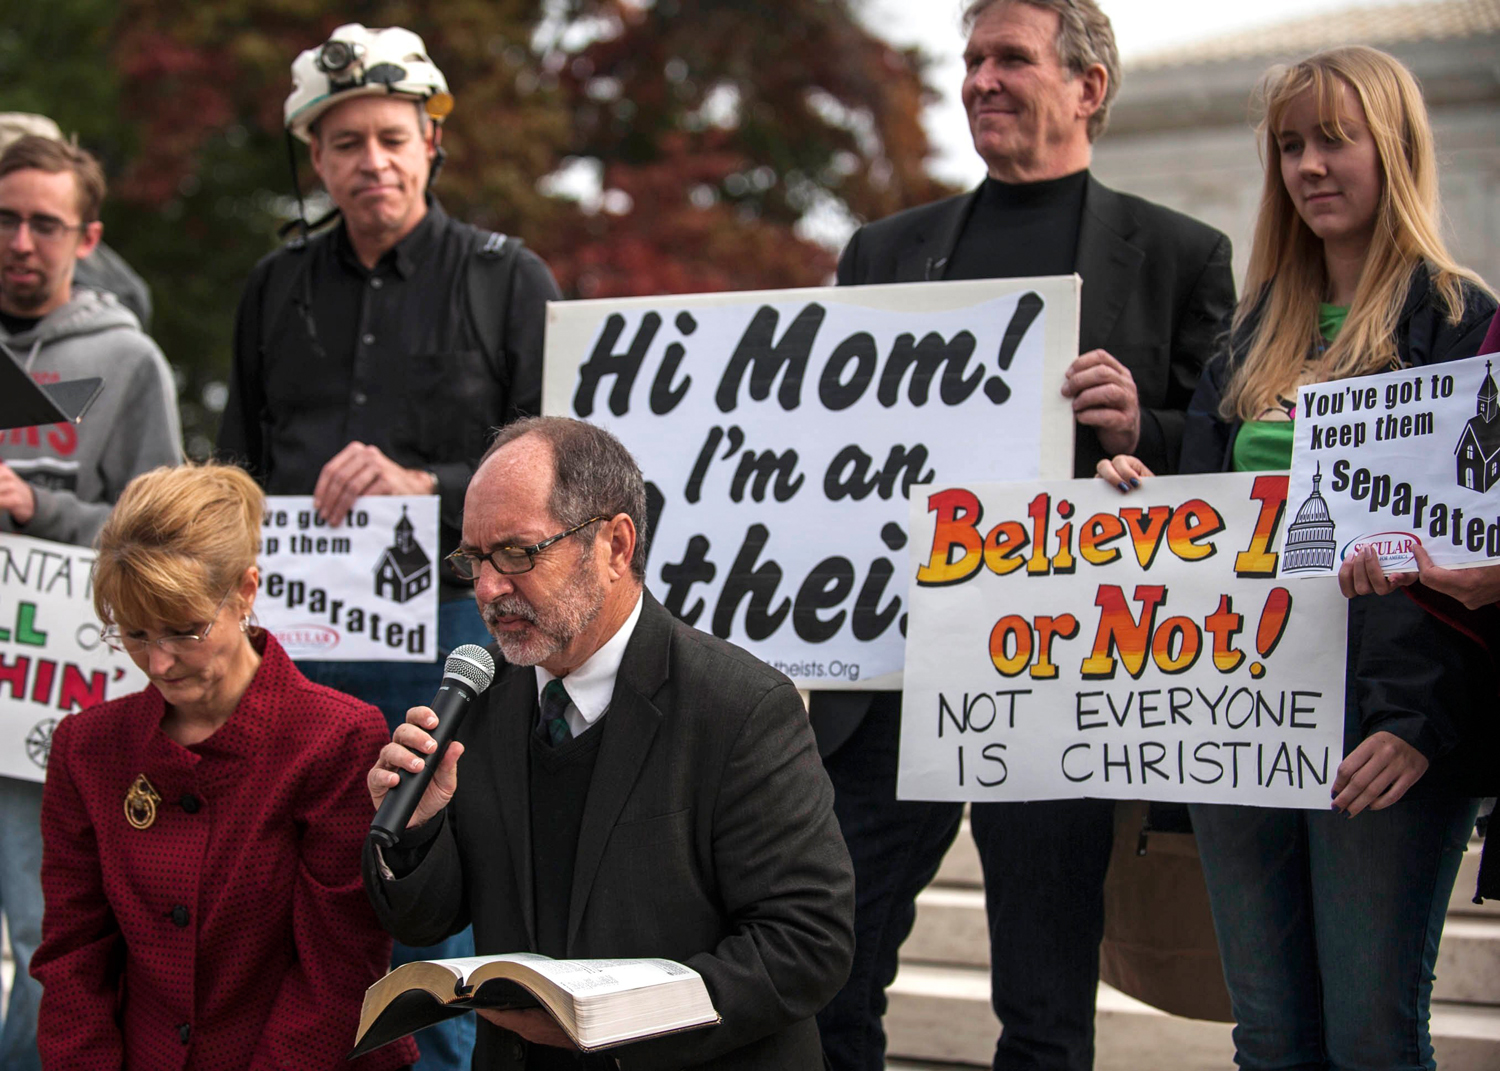 Image: Rev. Mahoney of the Christian Defense Coalition prays outside the U.S. Supreme Court as it hears arguments in the case of Town of Greece, NY v. Galloway, in Washington